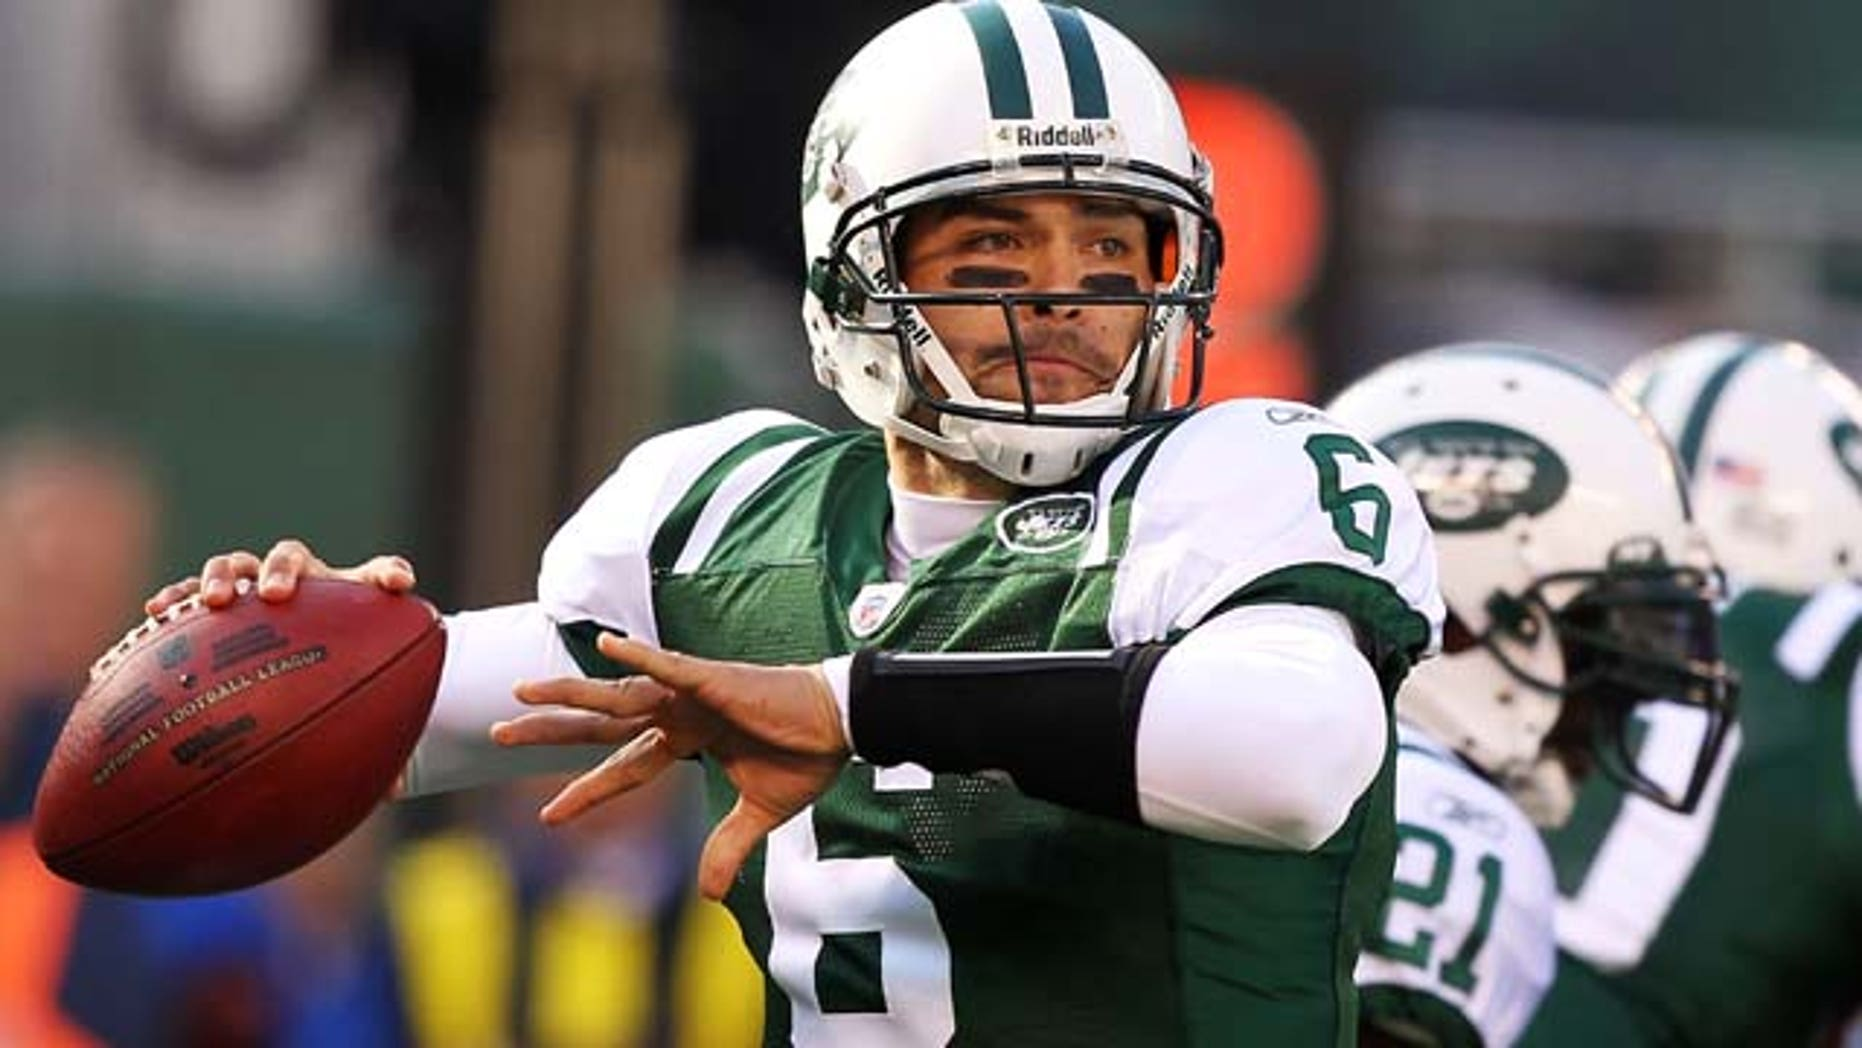 EAST RUTHERFORD, NJ - NOVEMBER 21:  Mark Sanchez #6 of the New York Jets throws against the Houston Texans during their  game on November 21, 2010 at the New Meadowlands Stadium in East Rutherford, New Jersey.  (Photo by Al Bello/Getty Images)